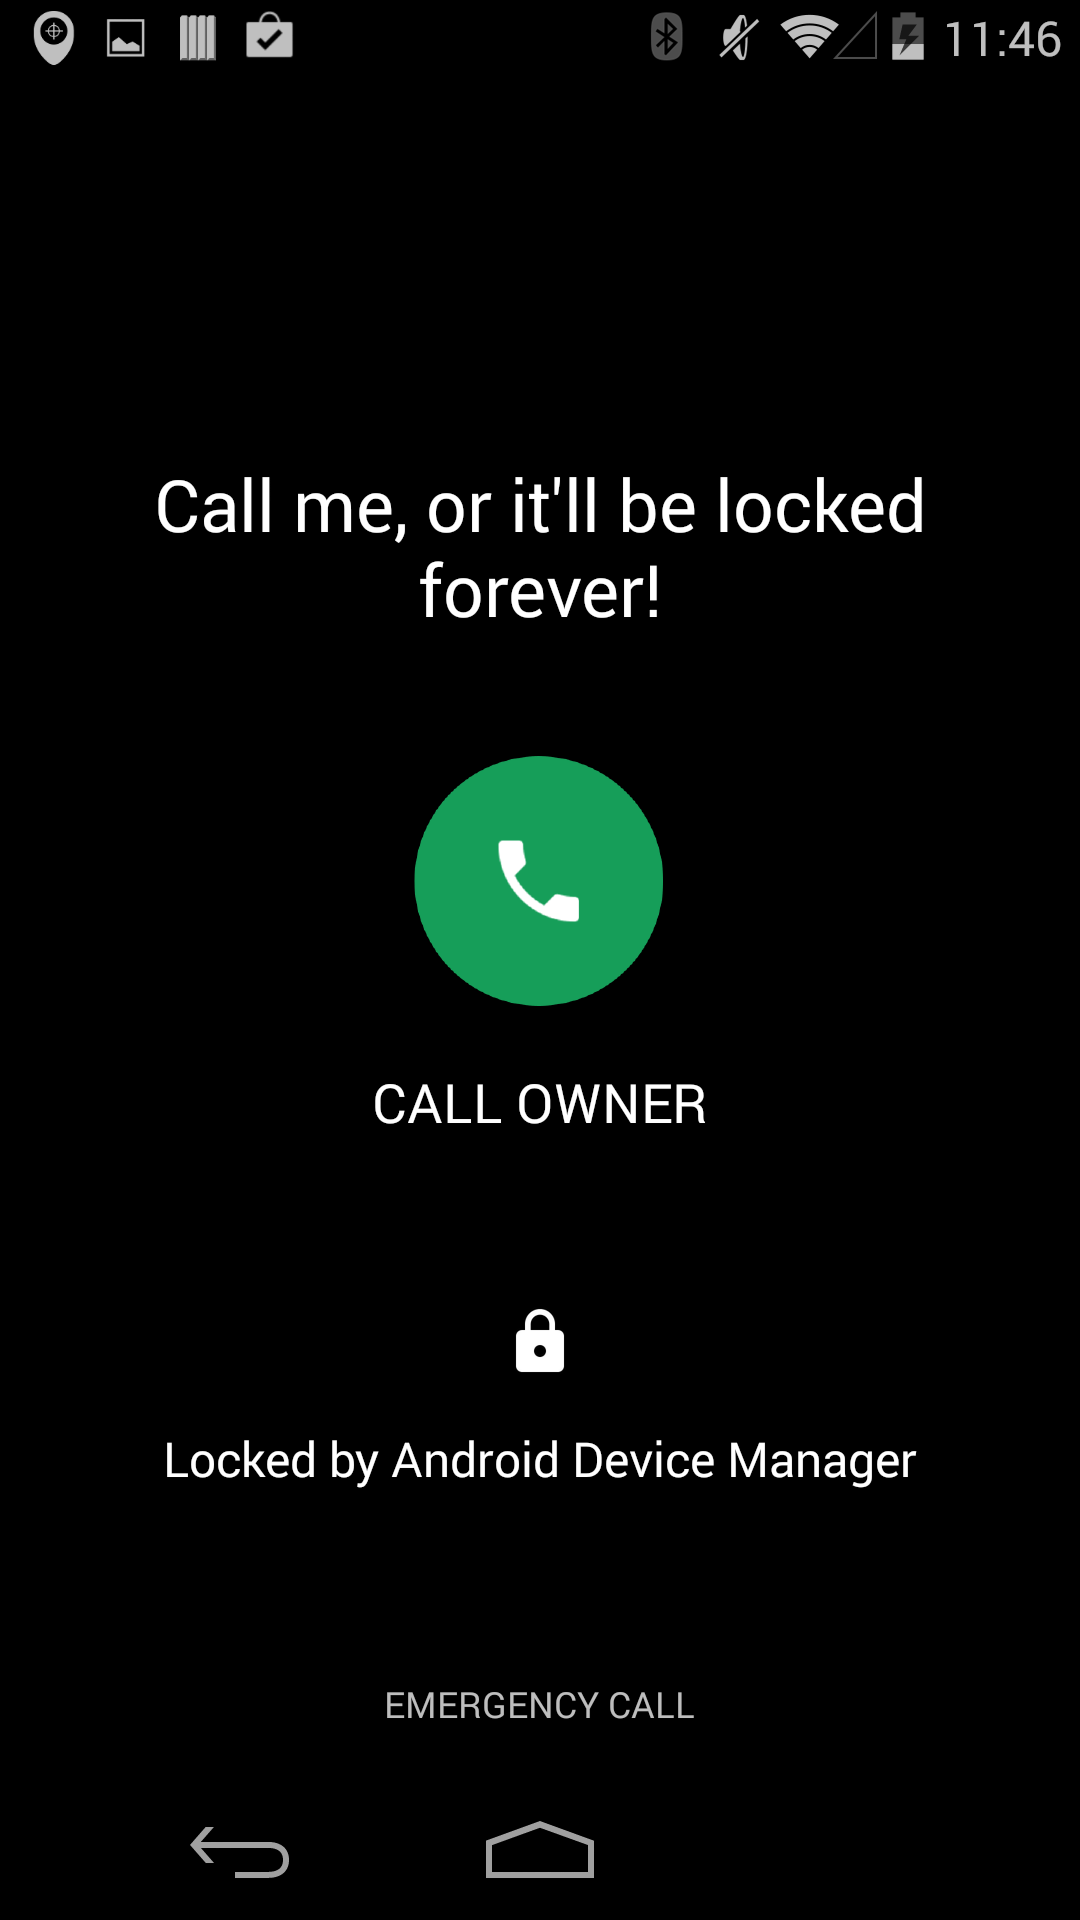 android-device-manager-callback